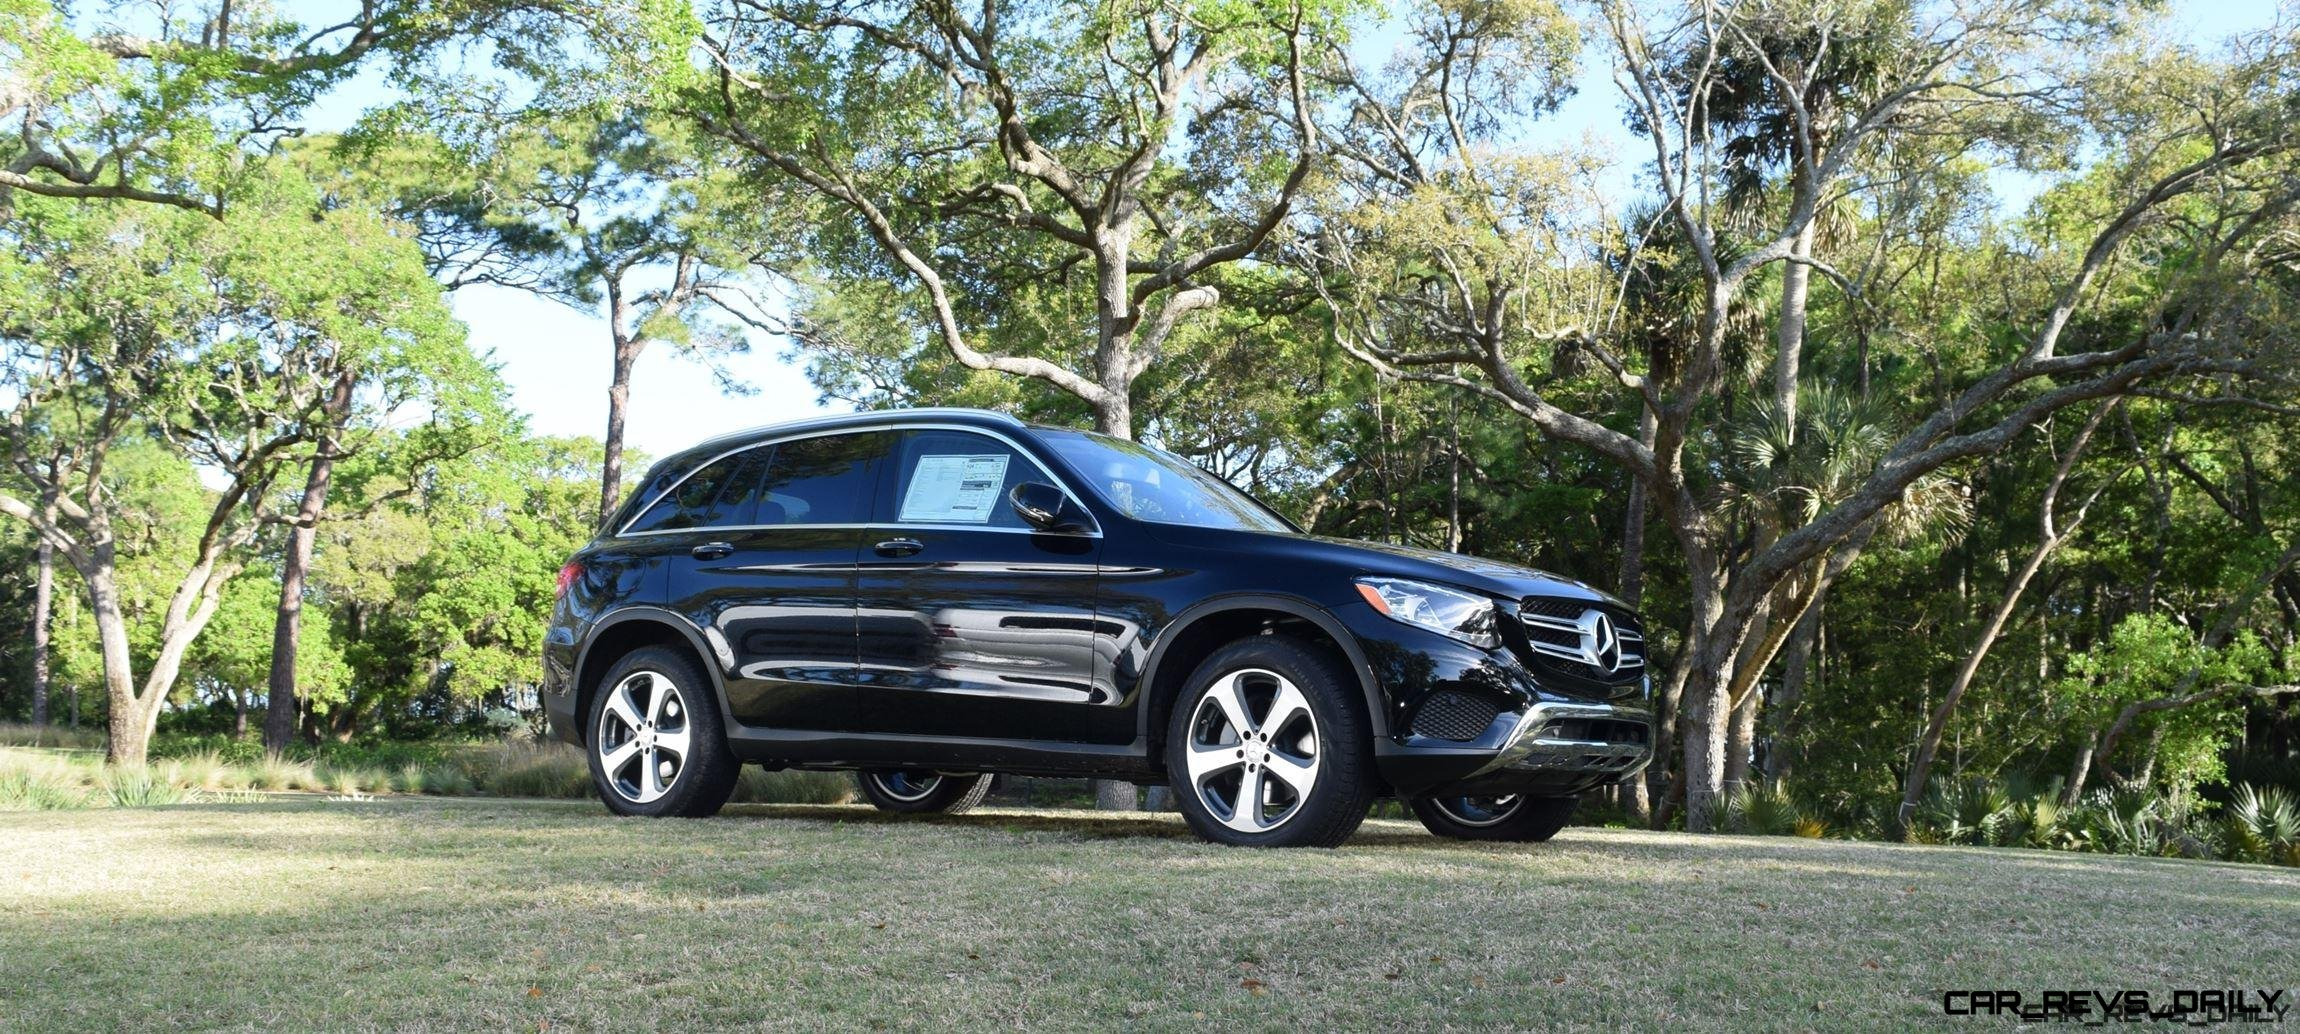 2016 Mercedes-Benz GLC300 12